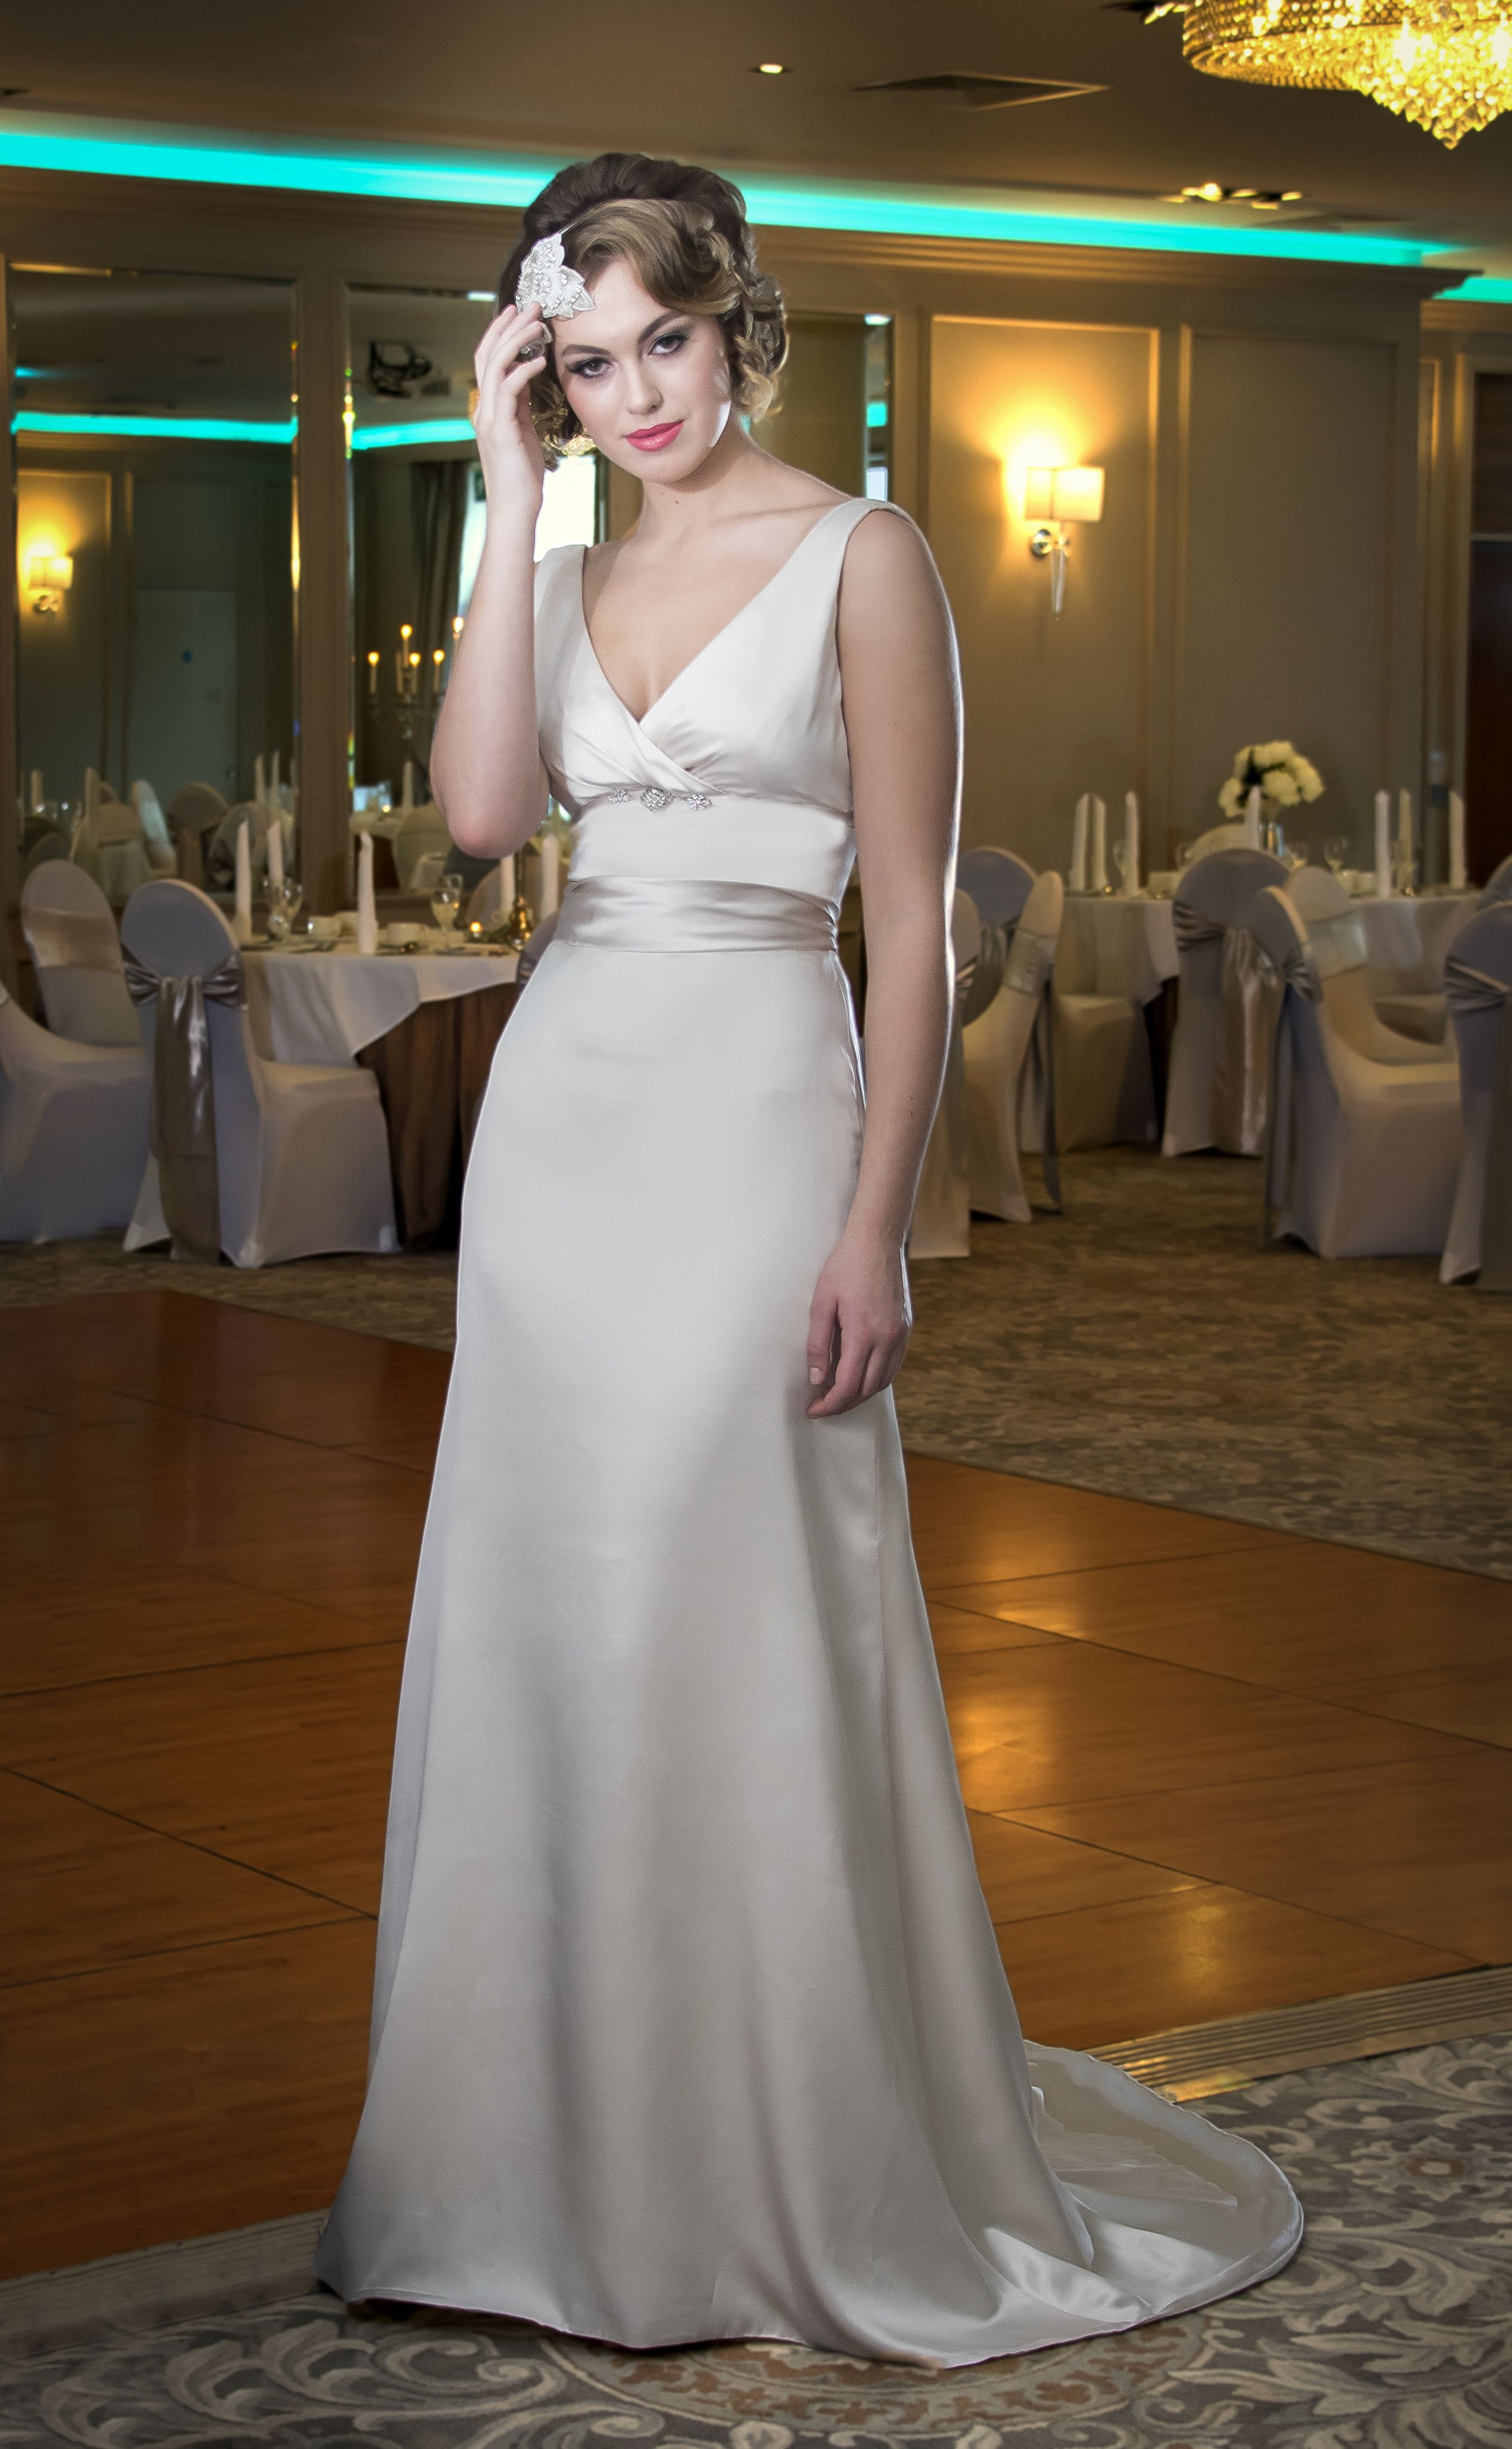 DePaor Bridal Gown shot for the Irish Wedding Diary